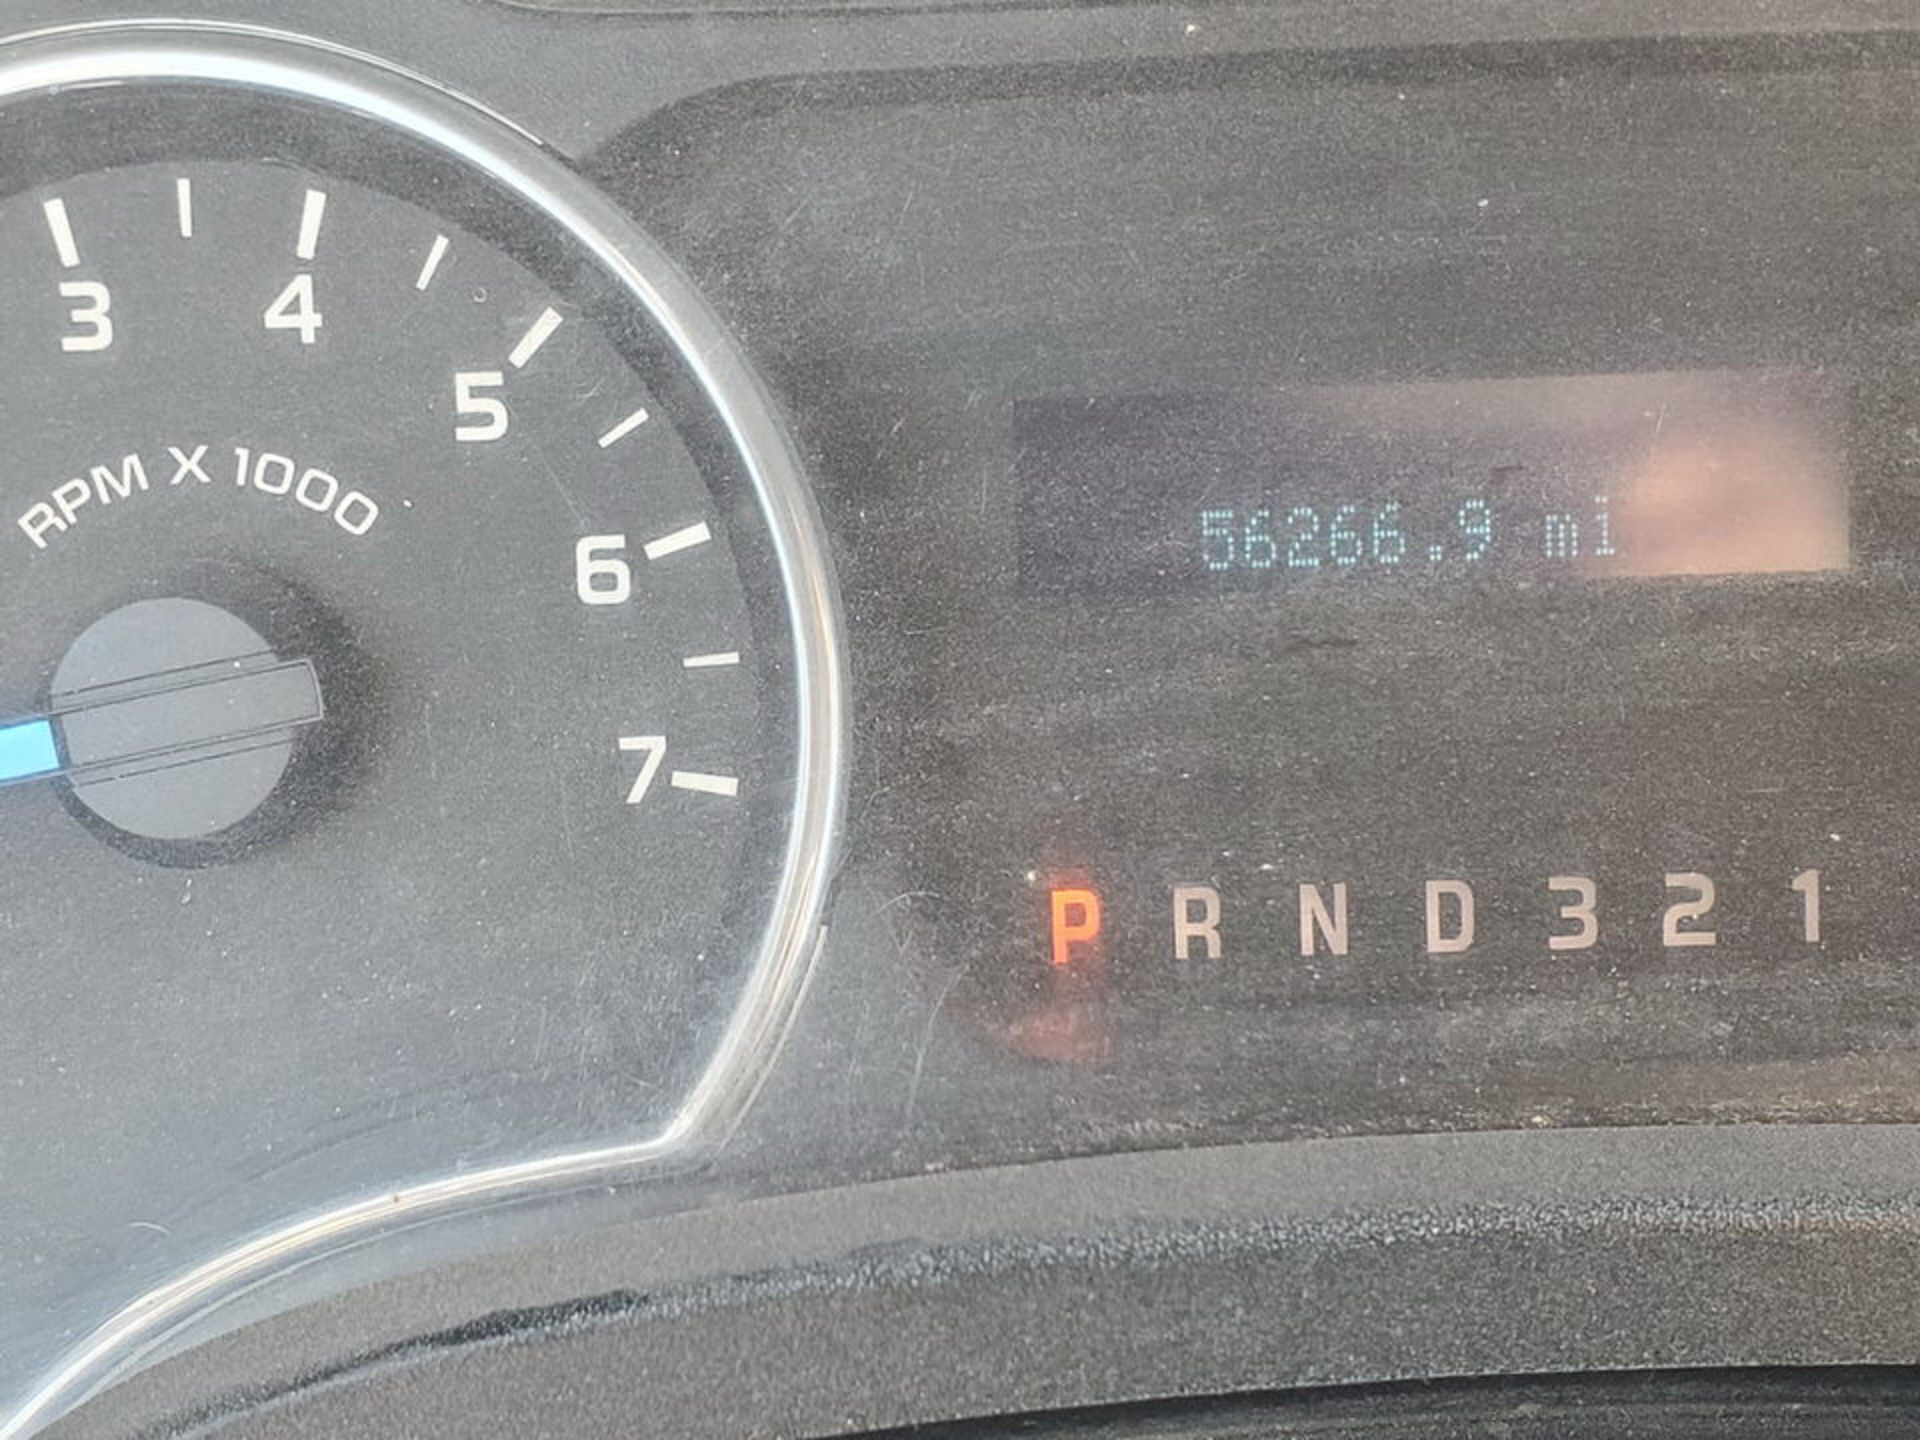 2013 Ford F150 Pickup Vin: 1FTFW1CF0DKF14097, TX Plates: CFT 3081, W/ 6.2L Engine - Image 8 of 19